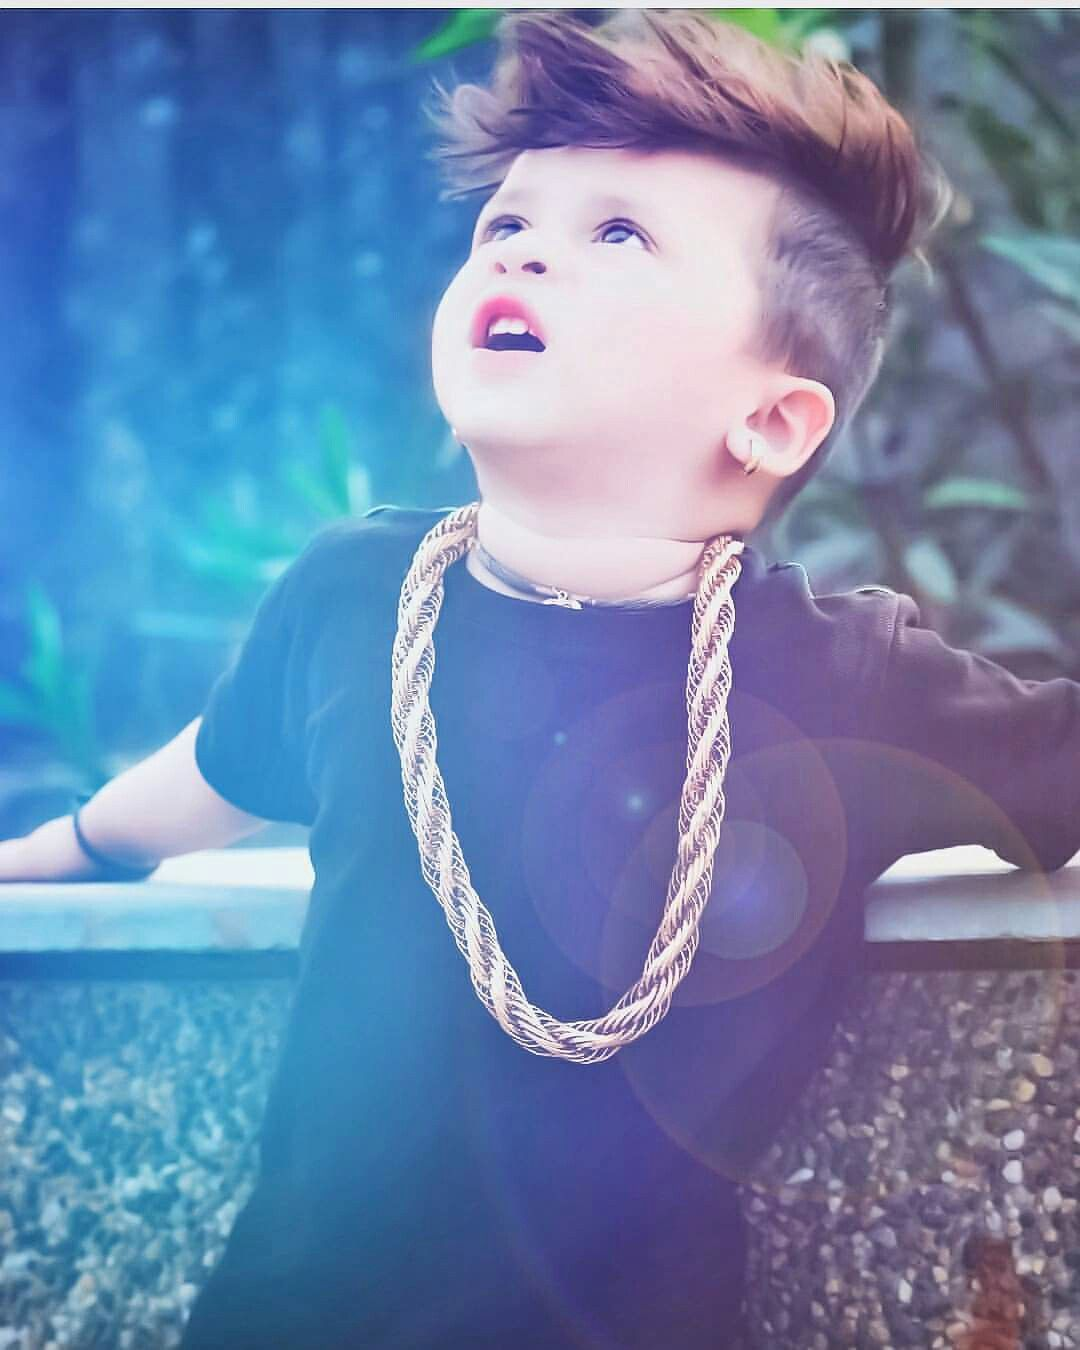 L Oev E Cute Baby Couple Stylish Little Boys Cute Baby Boy Pictures